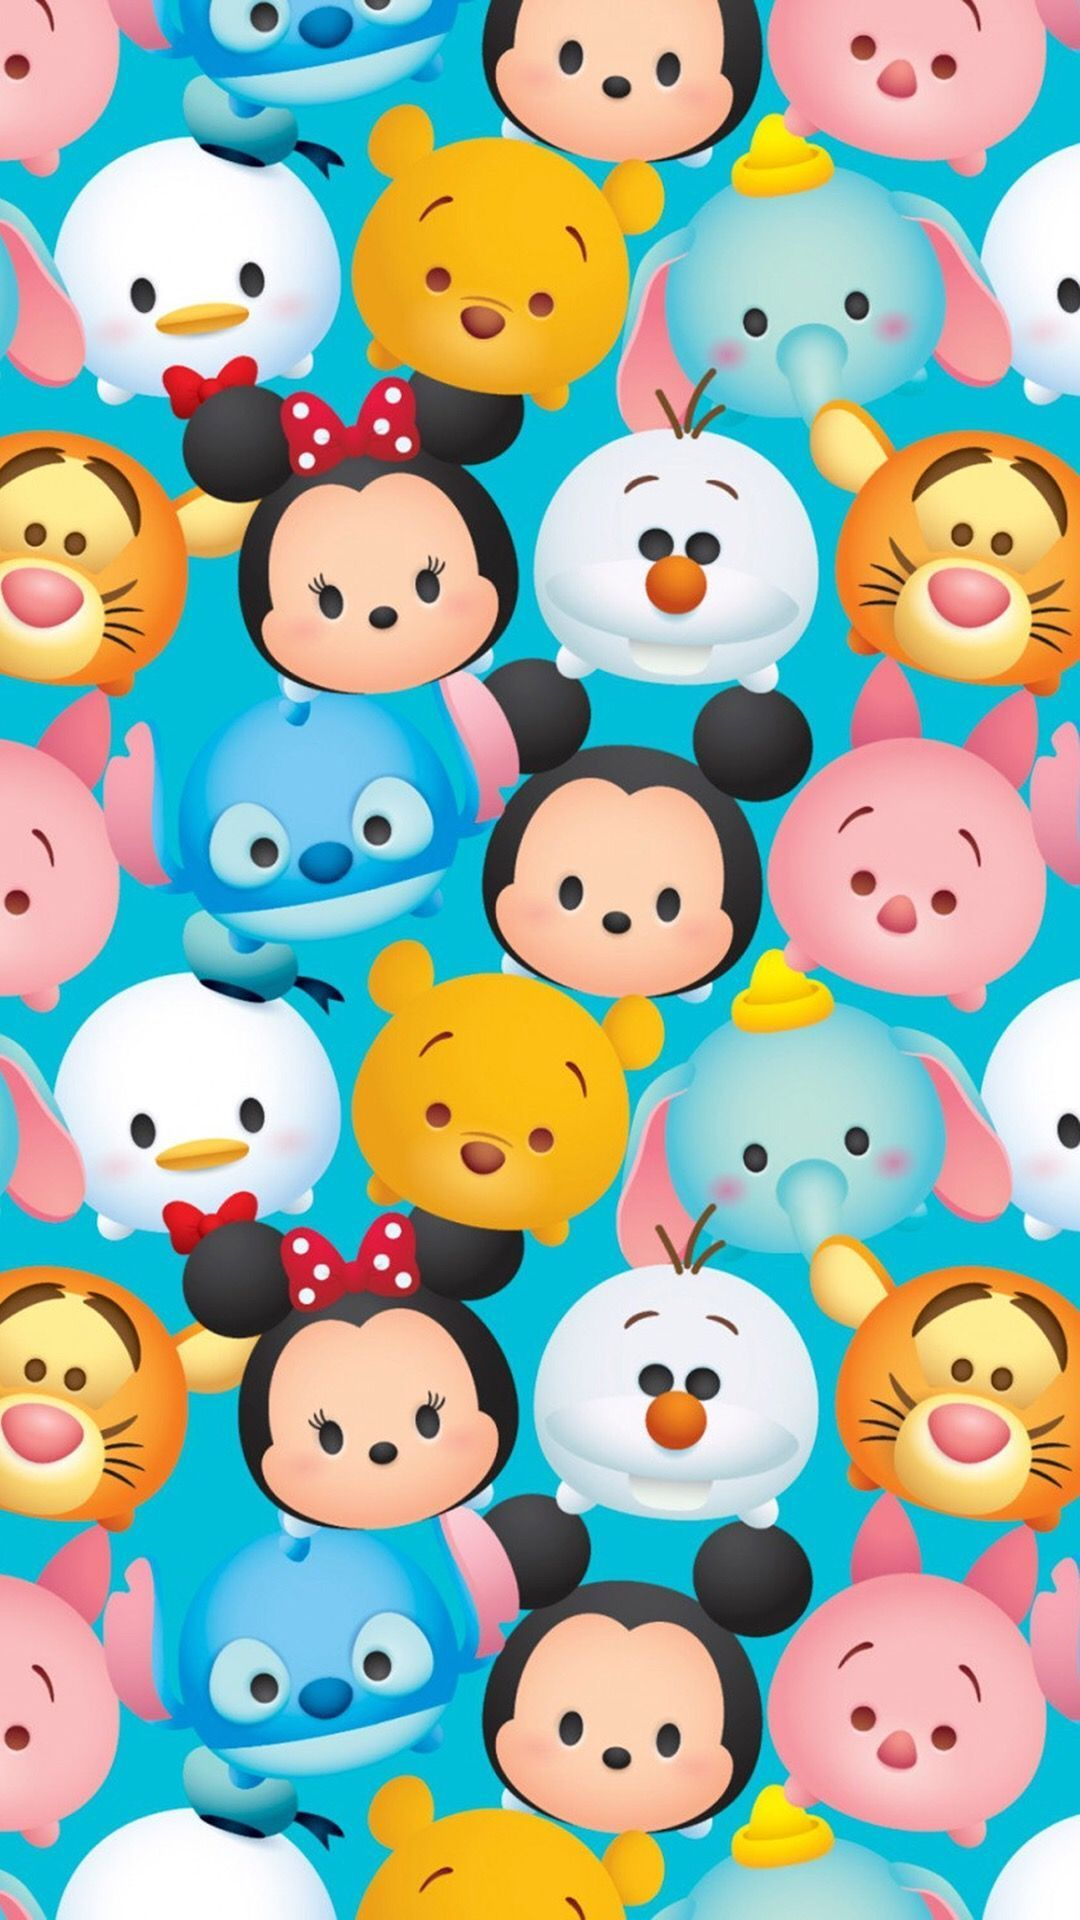 Disney Tsum Tsum Wallpapers Top Free Disney Tsum Tsum